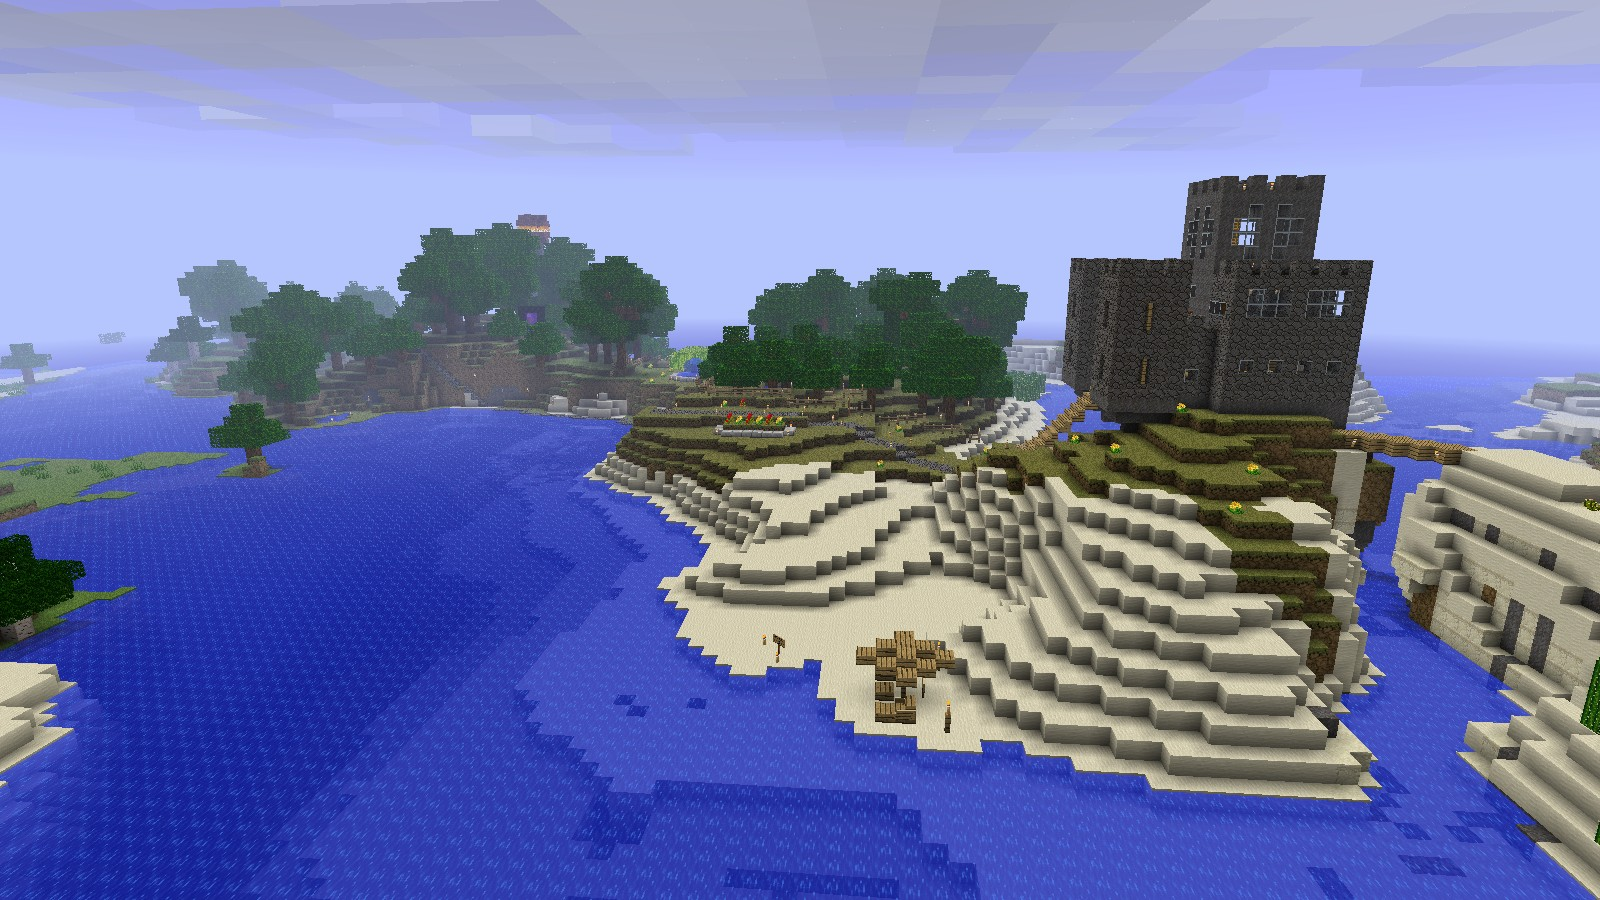 Minecraft, $2.5 Billion, and the Founder Who Never Meant to Make a Hit